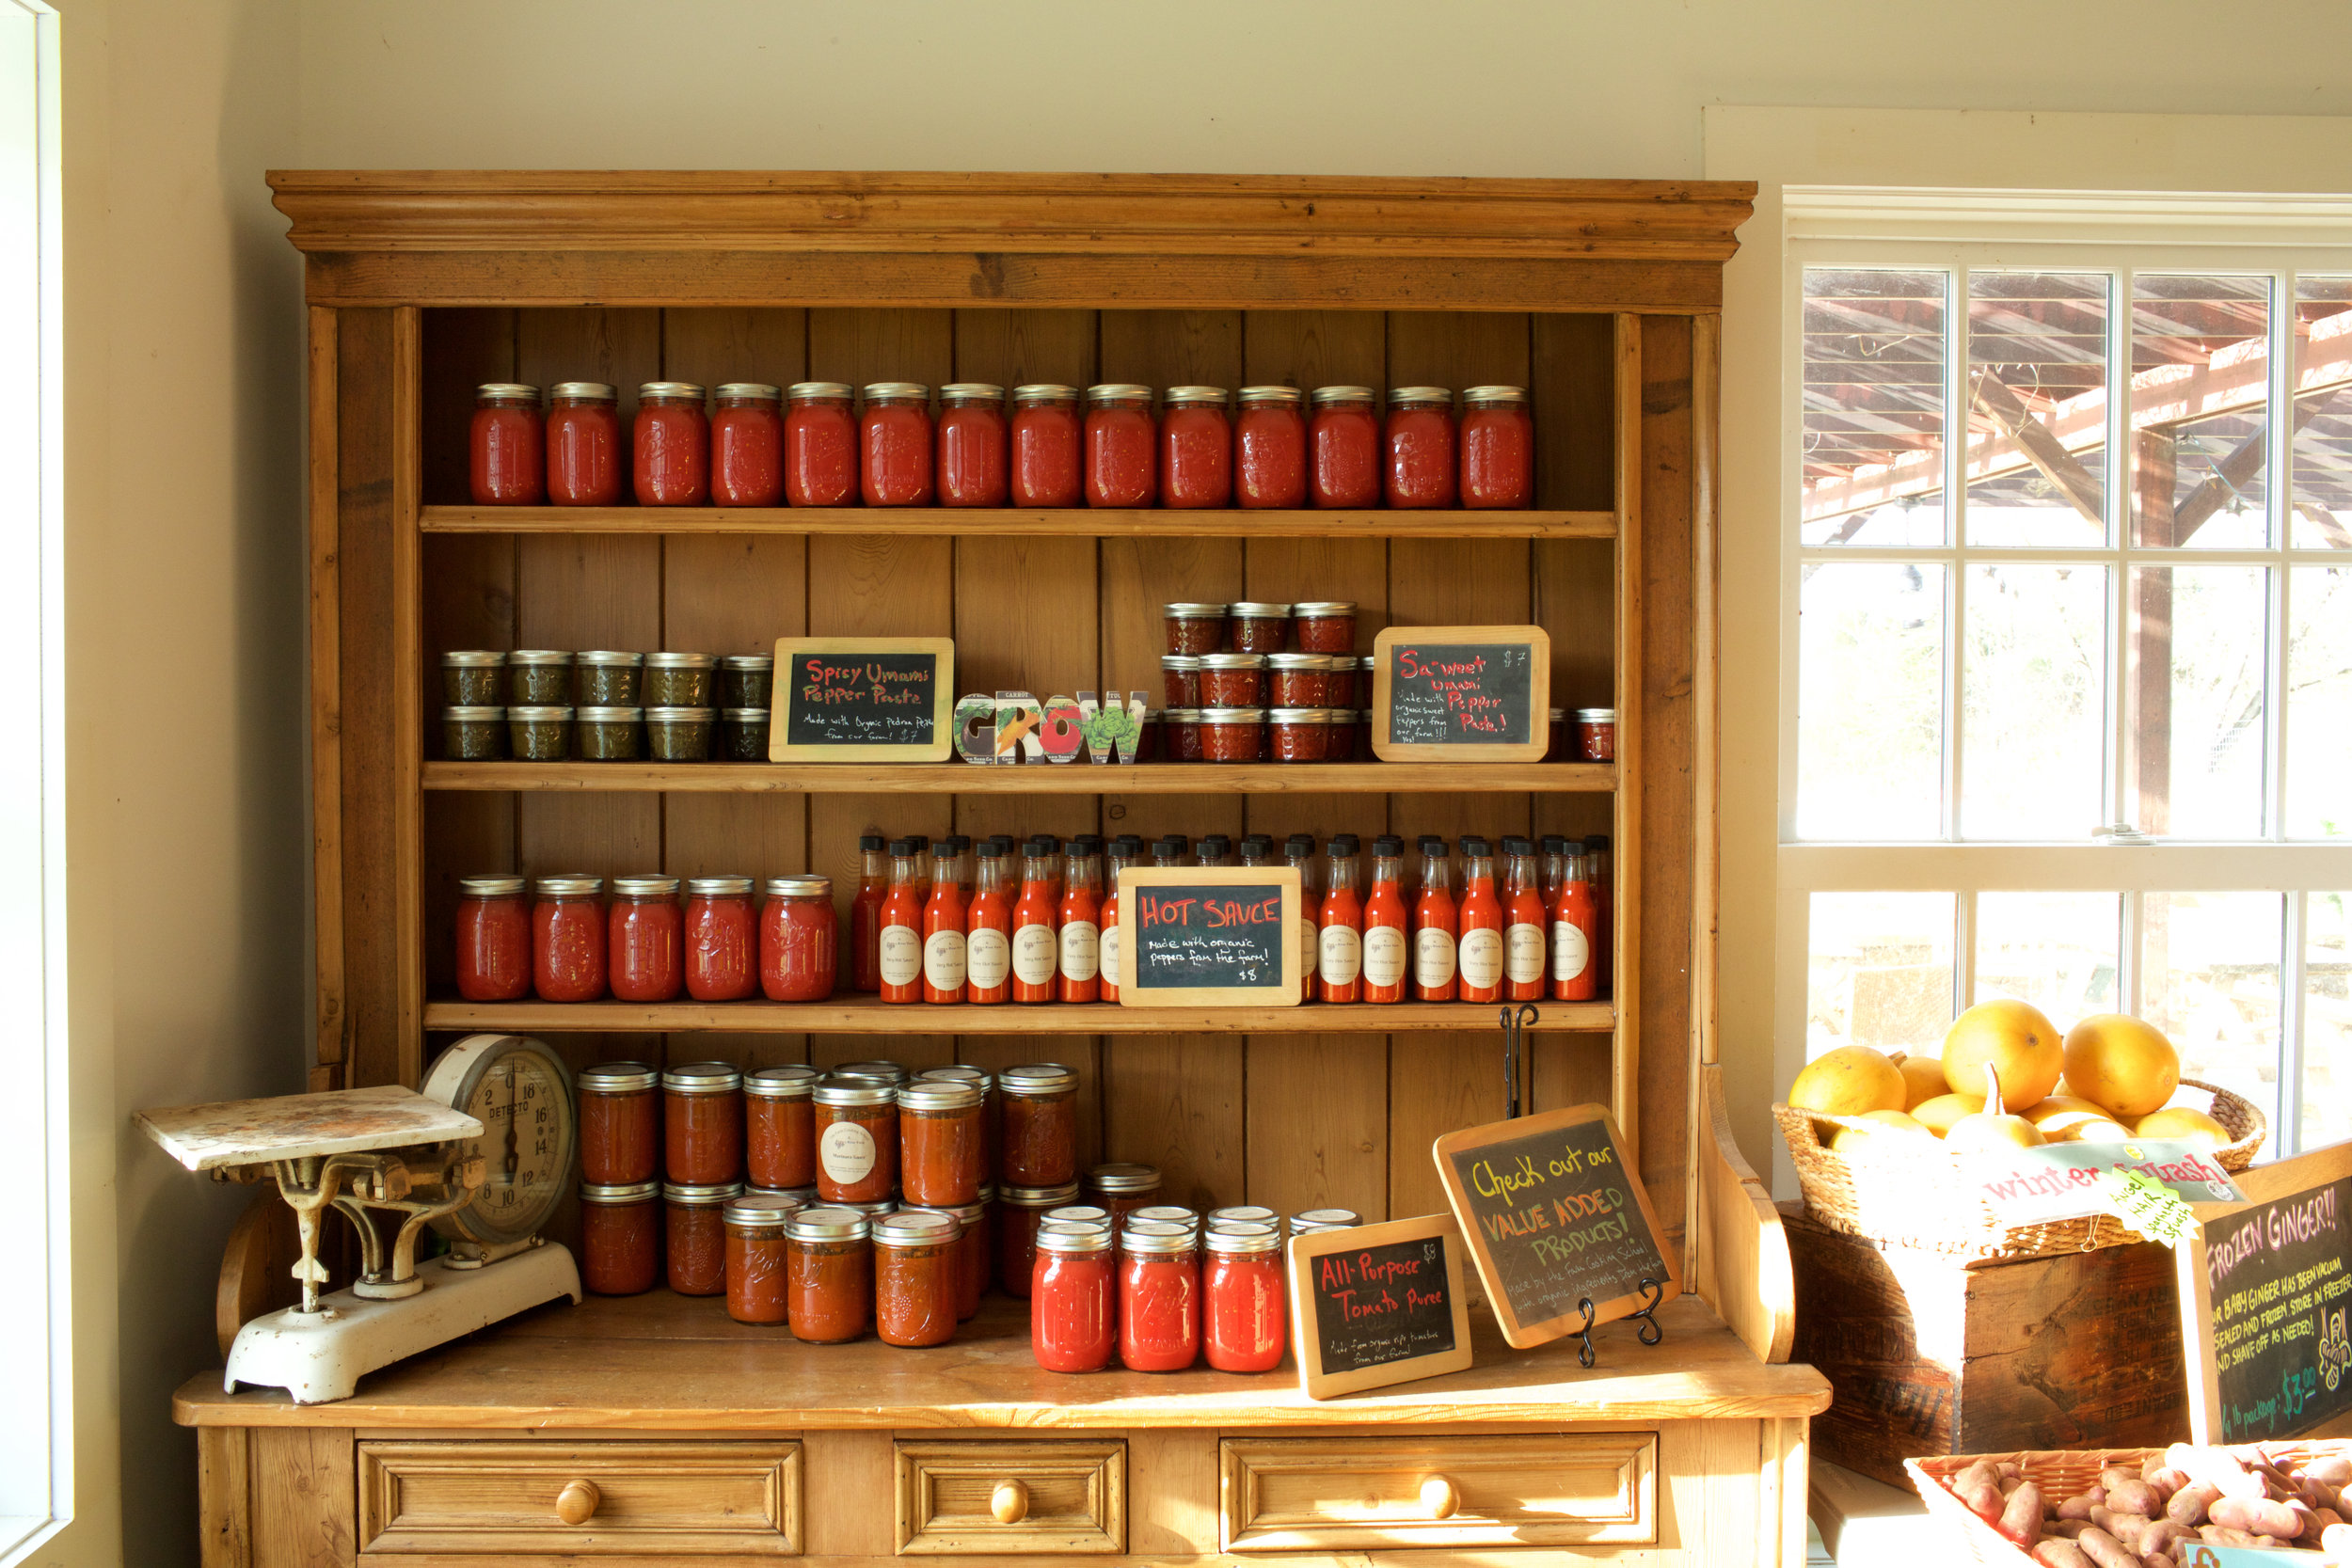 Stock your kitchen with canned goods made with organic ingredients from the farm